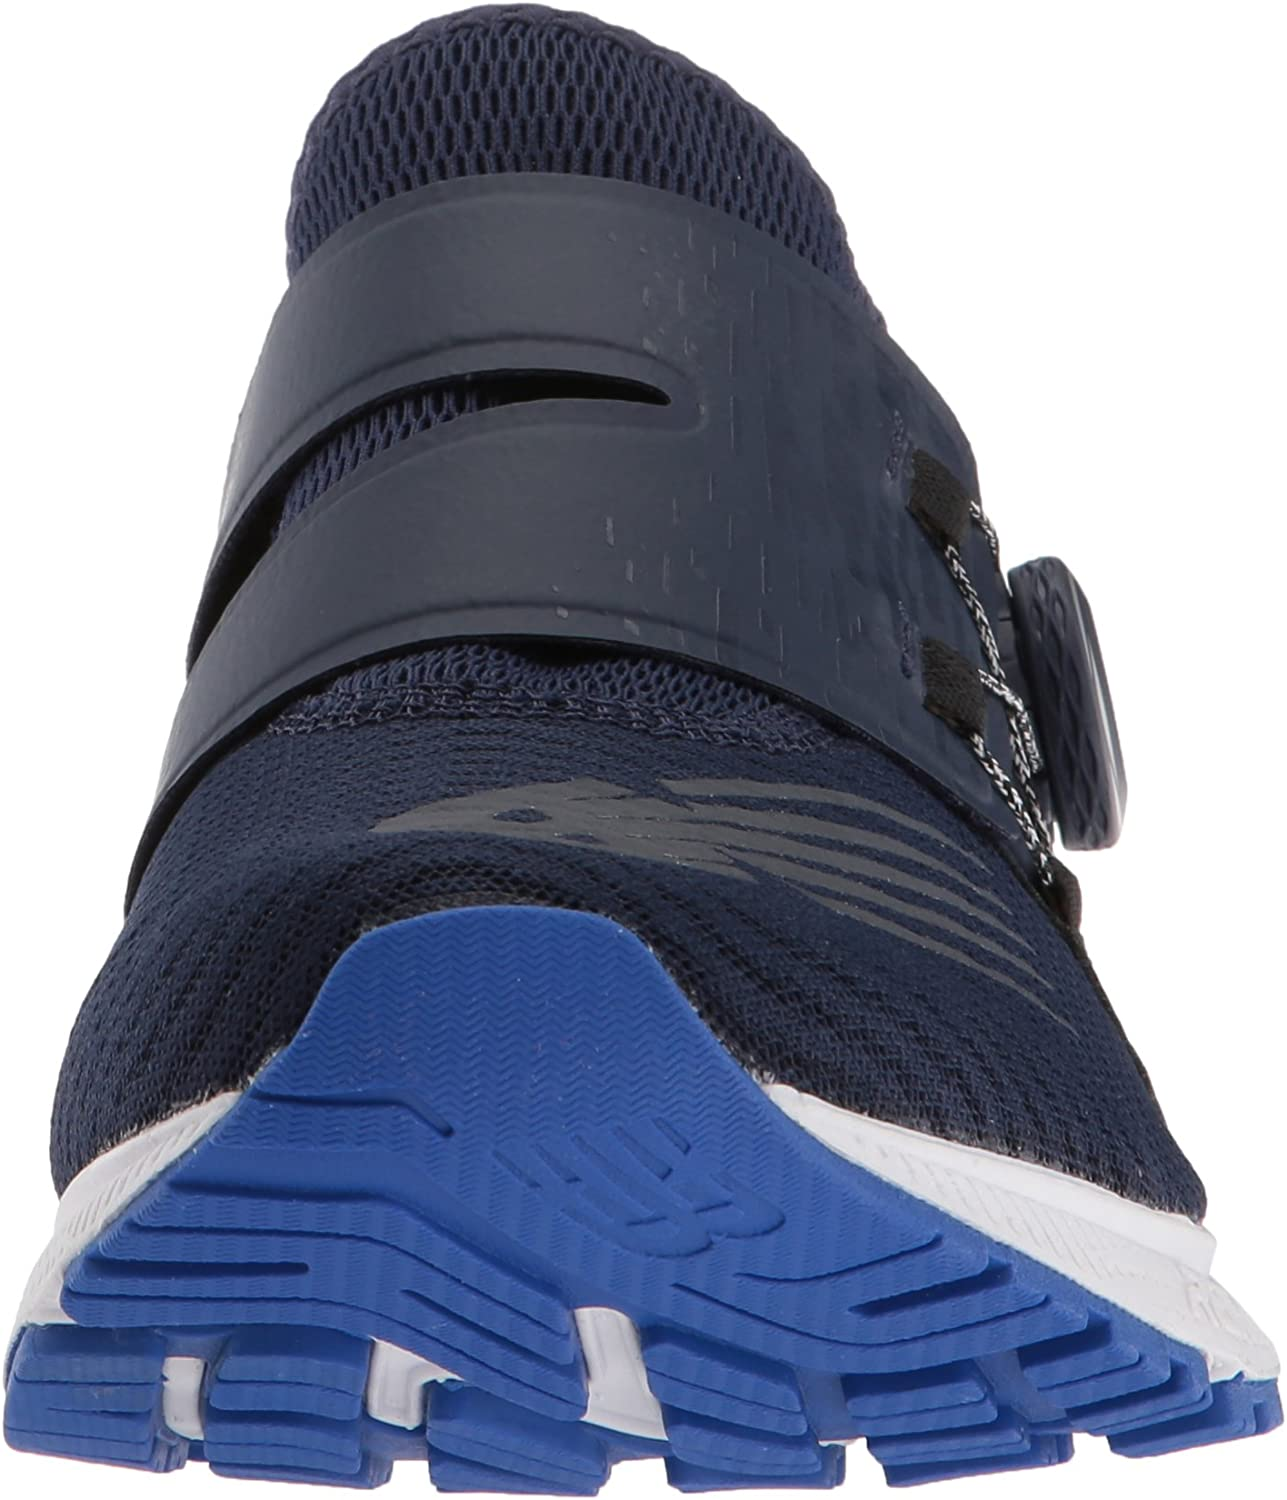 New Balance Fuel Core Sonic, Zapatillas de Running para Hombre, Azul (Blue), 46.5 EU: Amazon.es: Zapatos y complementos